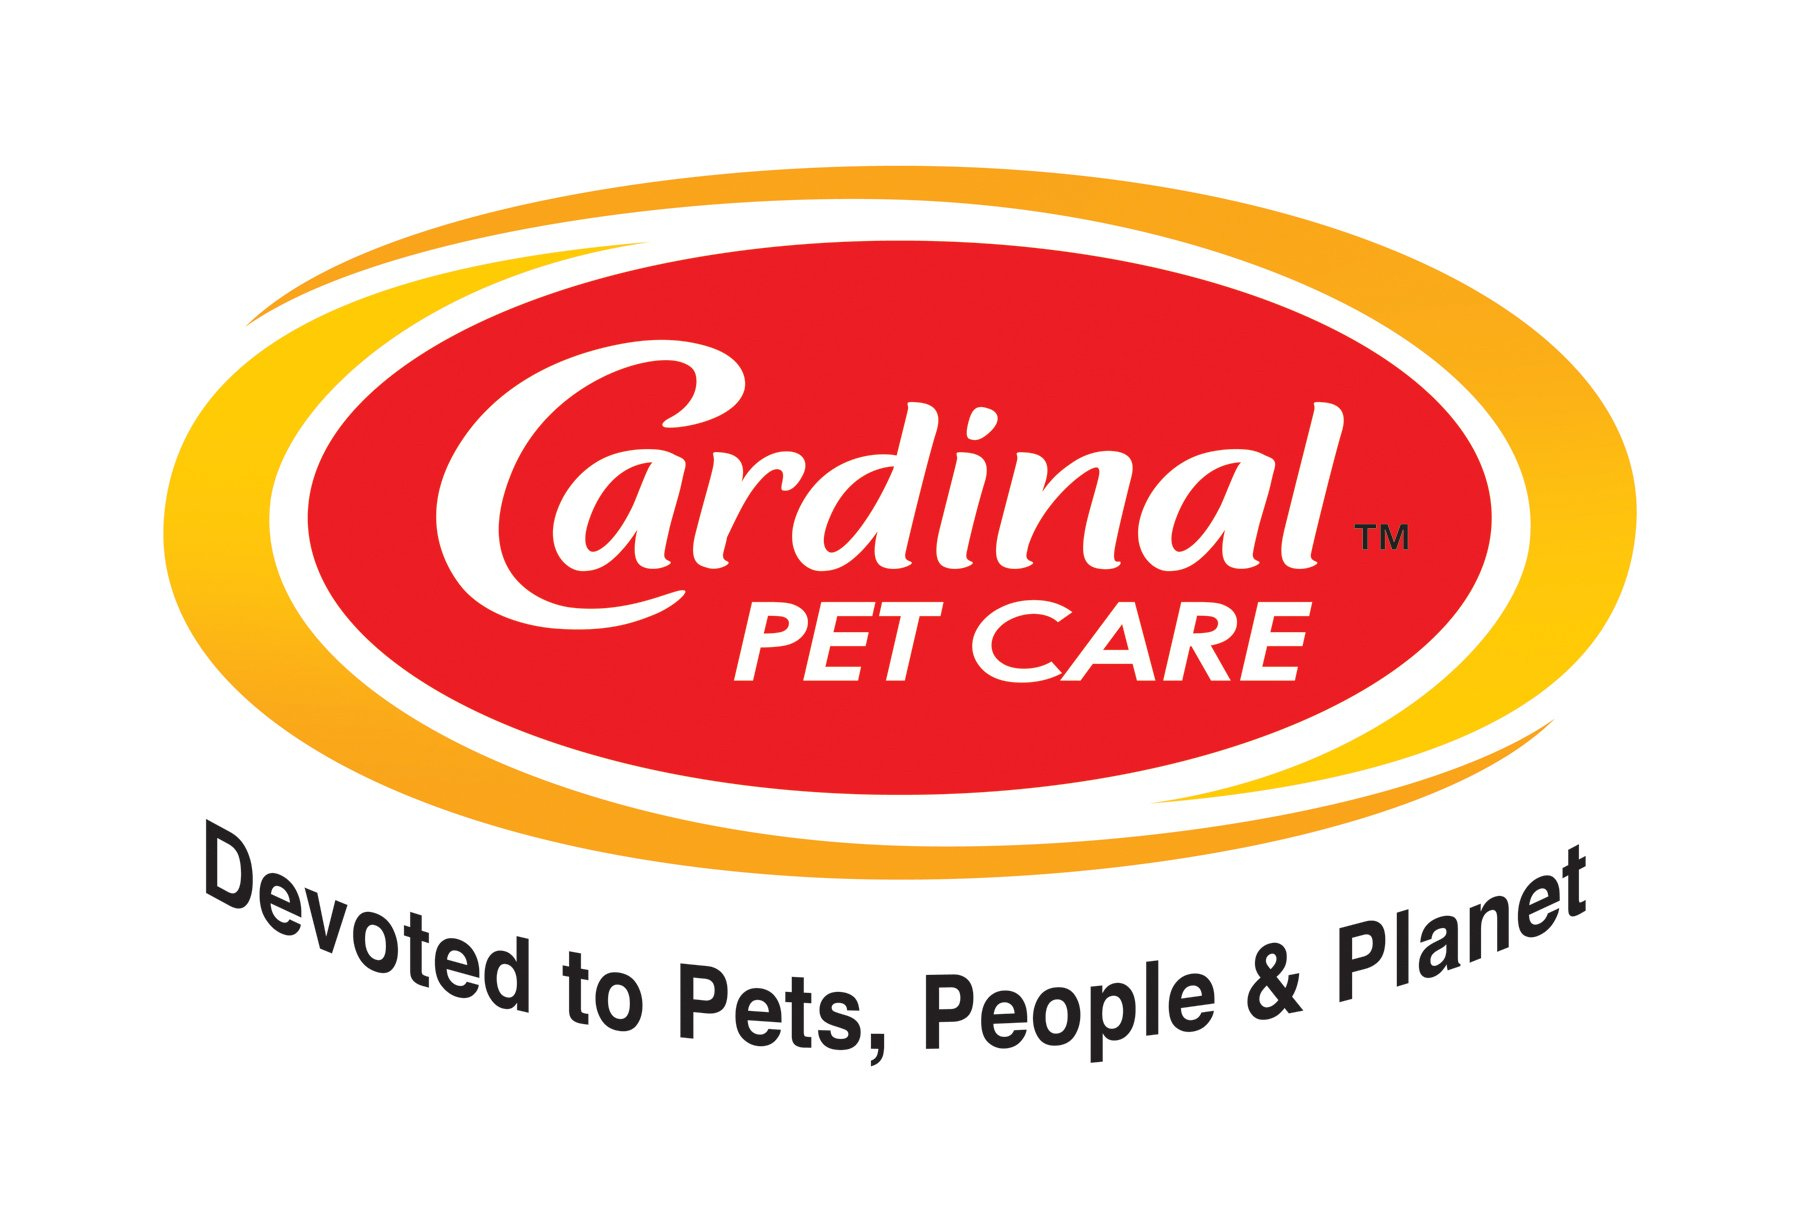 Cardinal Pet Care utilizes PSC/Gallup partnership to launch a customized and proven employee survey